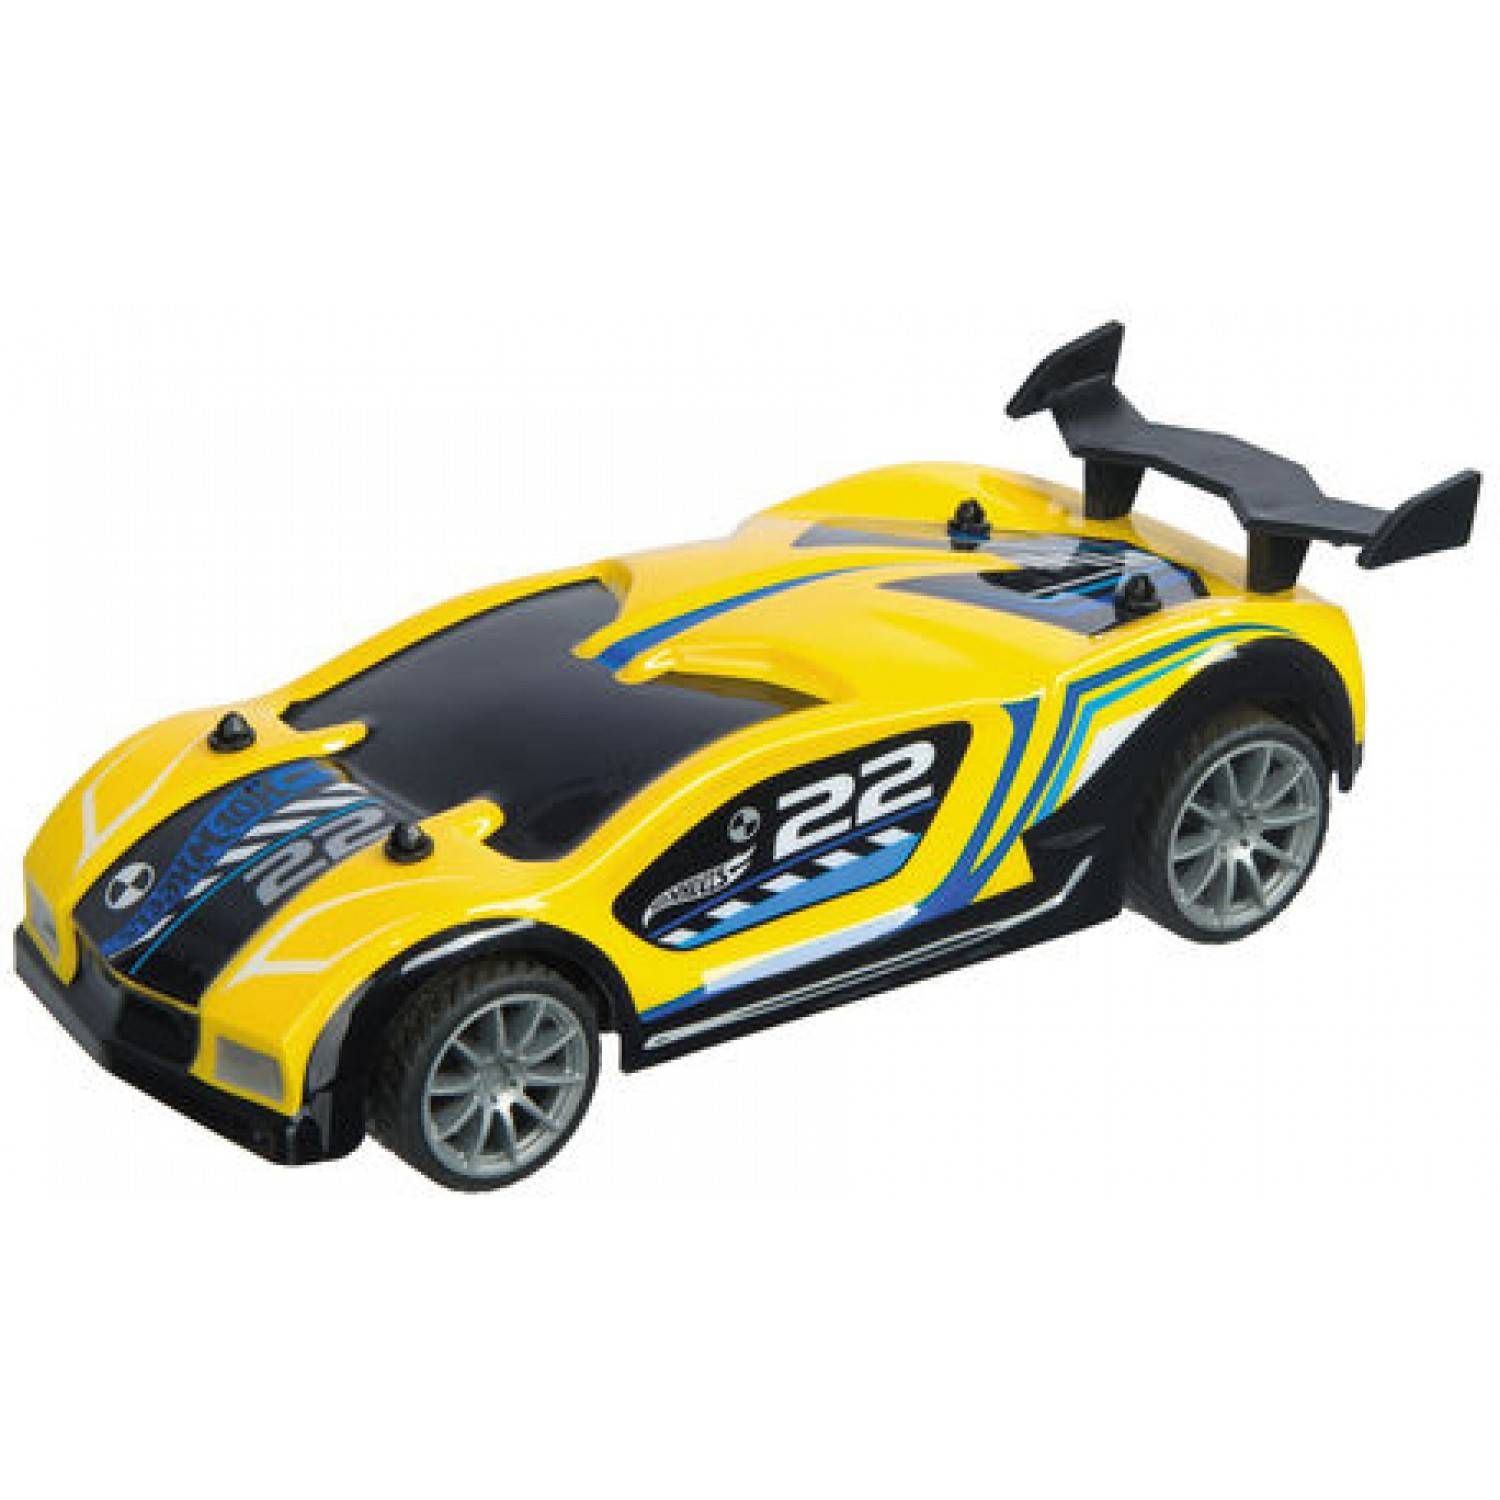 mondo macchinina mondo hot wheels radiocomandata speed series giallo